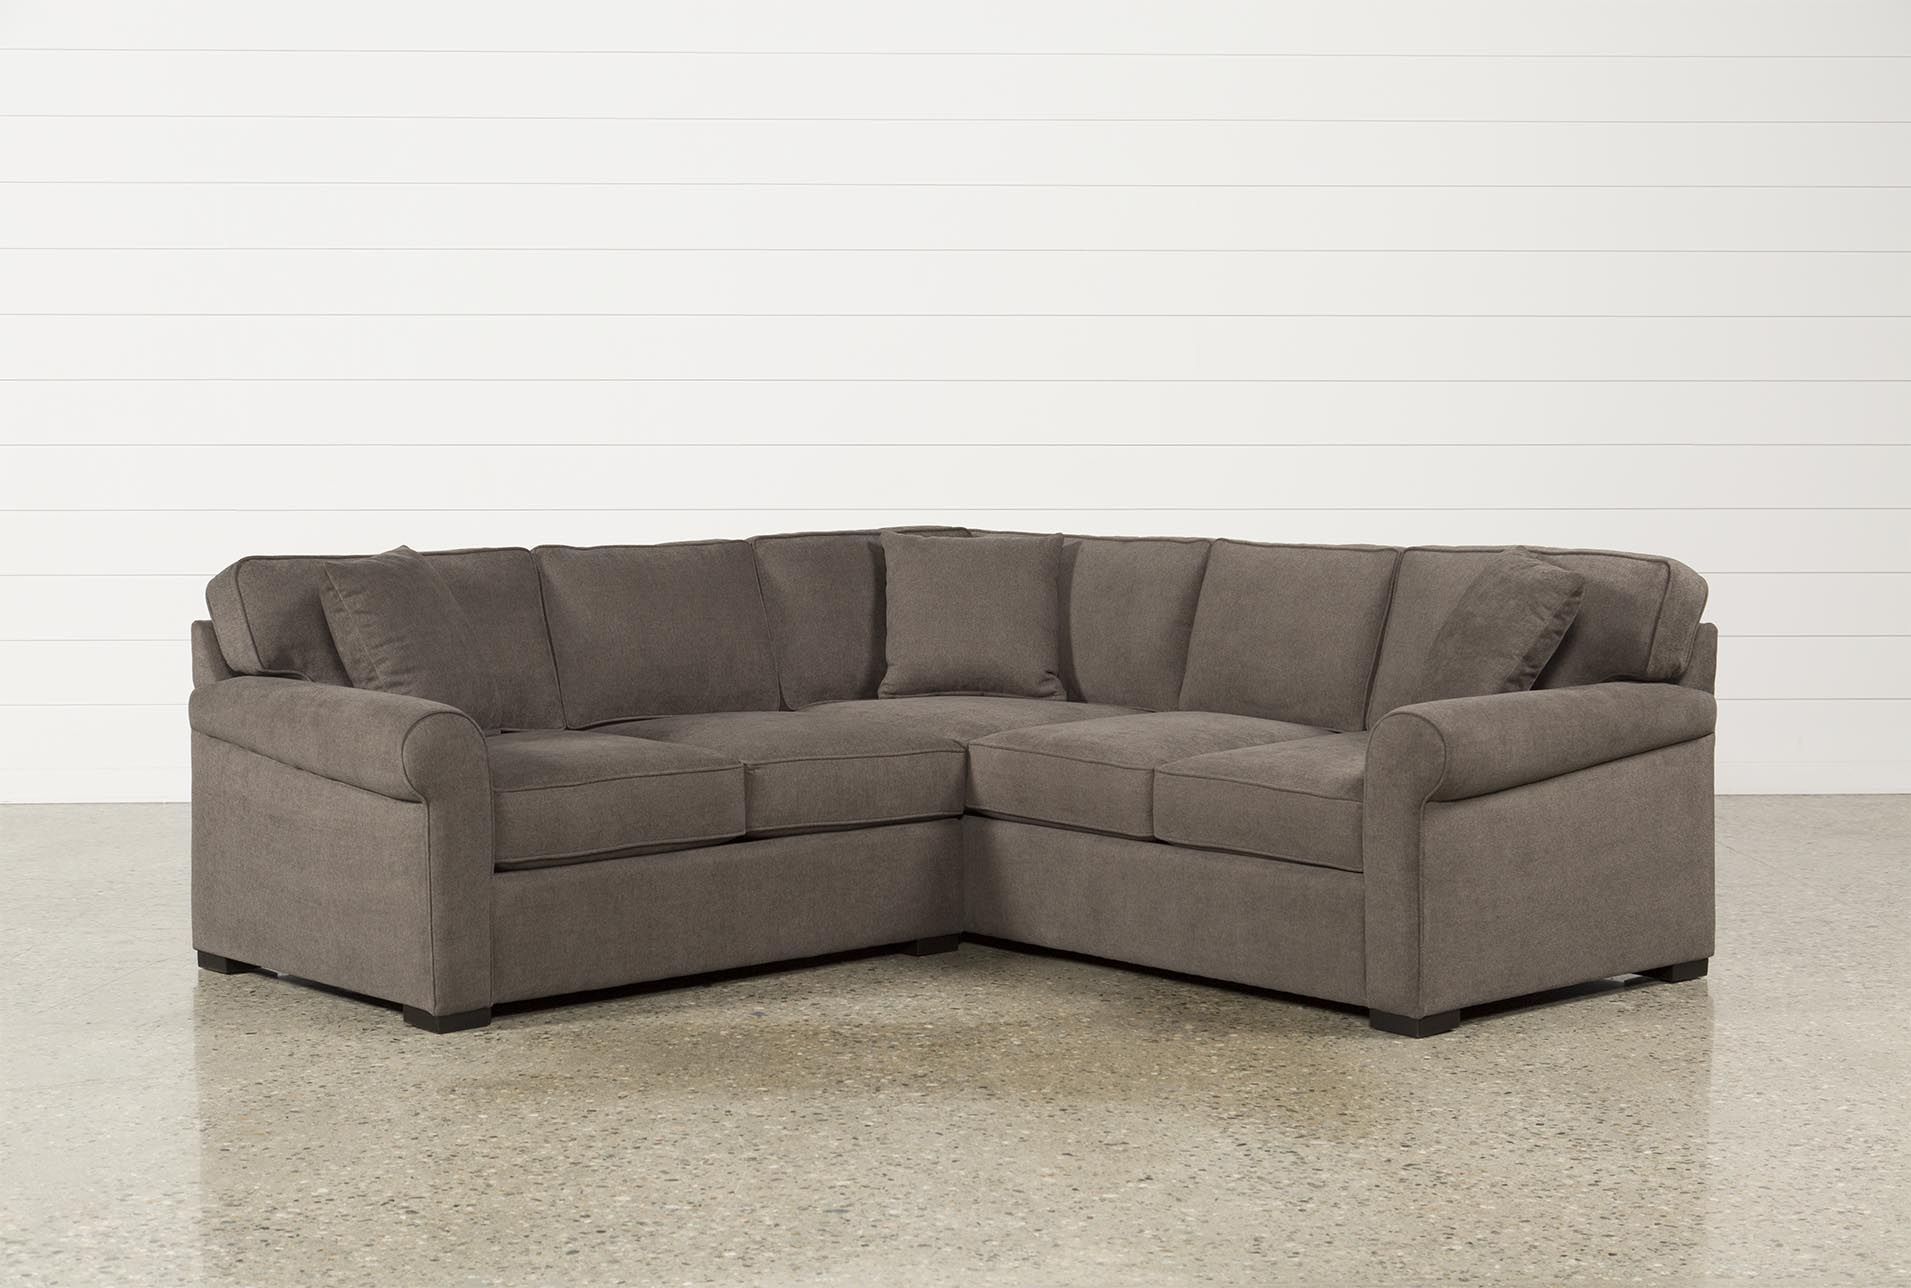 Elm Grande 2 Piece Sectional Inside Turdur 3 Piece Sectionals With Raf Loveseat (Image 7 of 25)